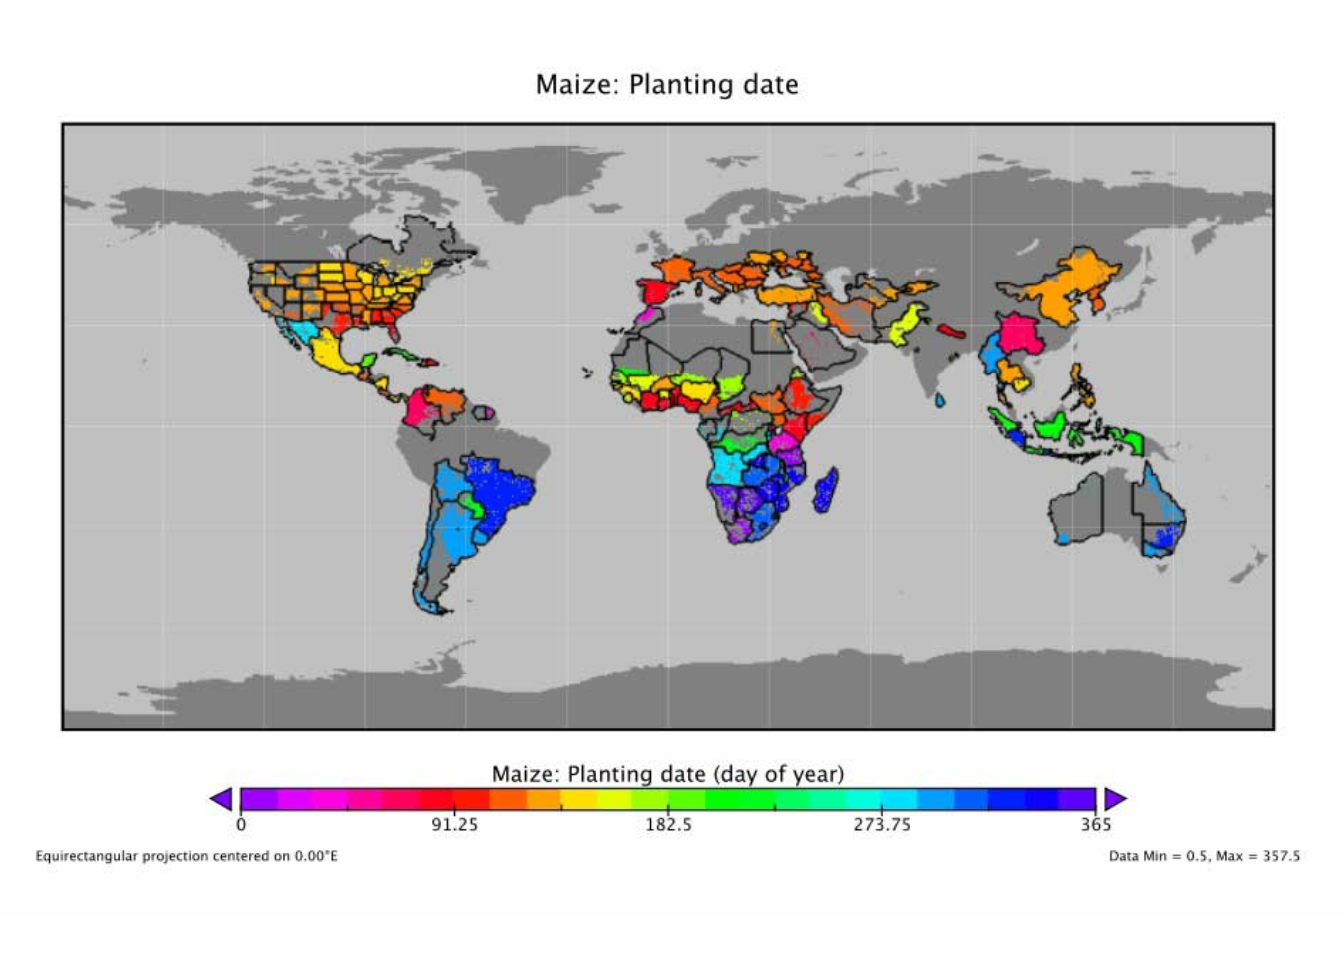 Figure 1: Global planting dates for Maize.